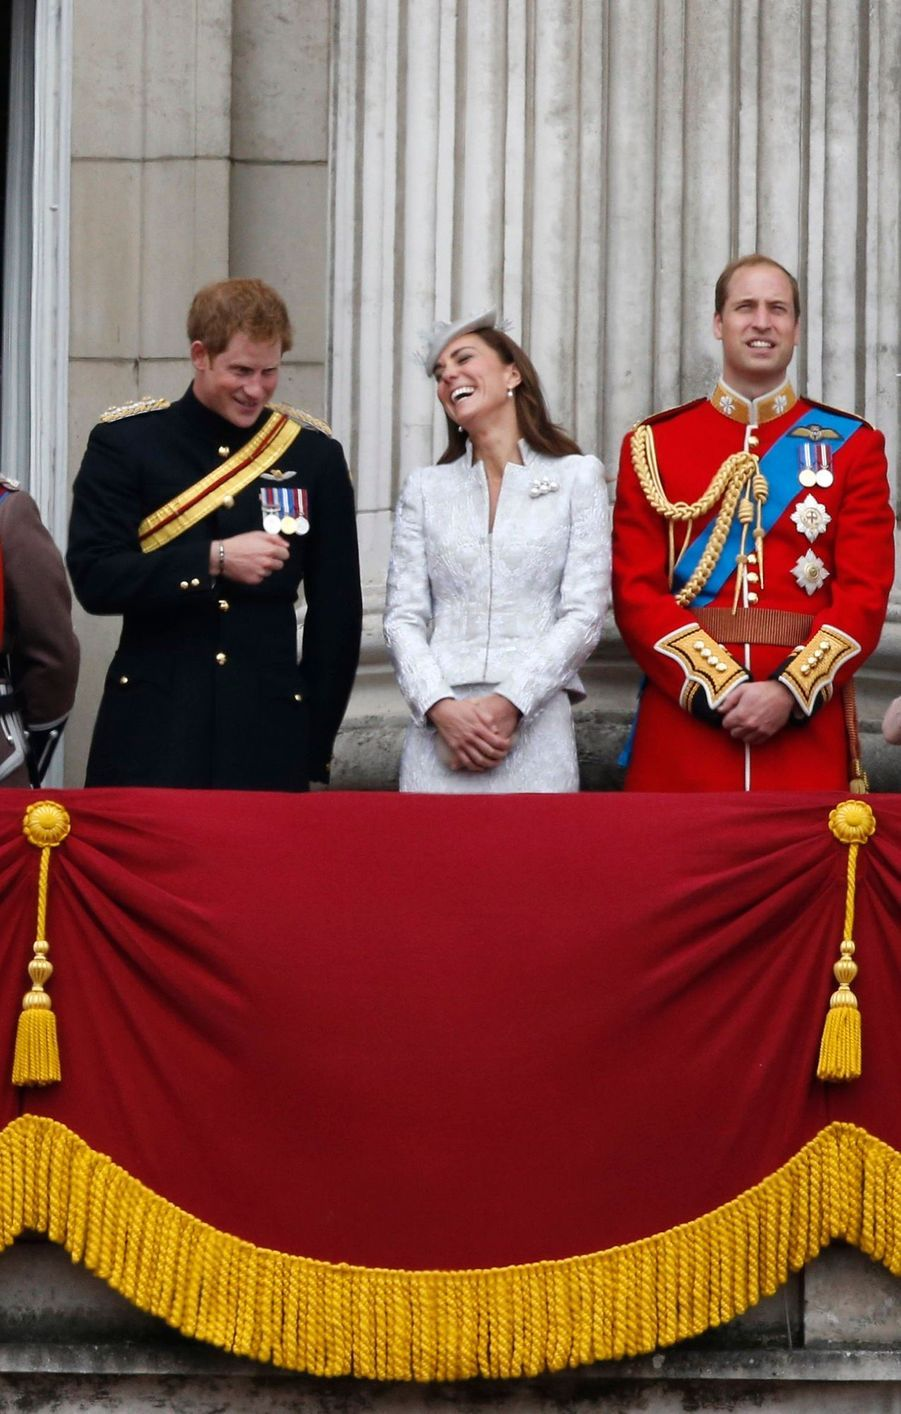 Kate, William et Harry complices au balcon de Buckingham, le 14 juin 2014